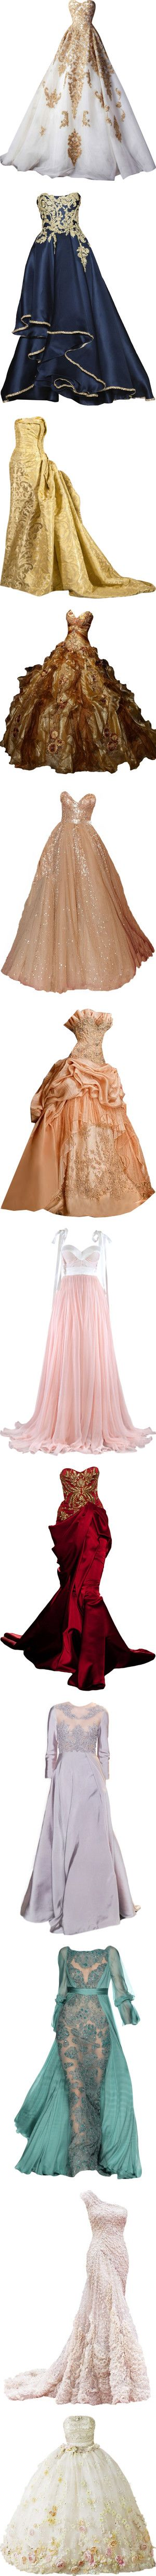 dresses that fuel my desire to be a princess by missherjh on Polyvore featuring dresses, gowns, long dresses, vestidos, long blue evening dress, blue ball gown, blue gown, blue evening dress, marchesa evening gowns and tube dress